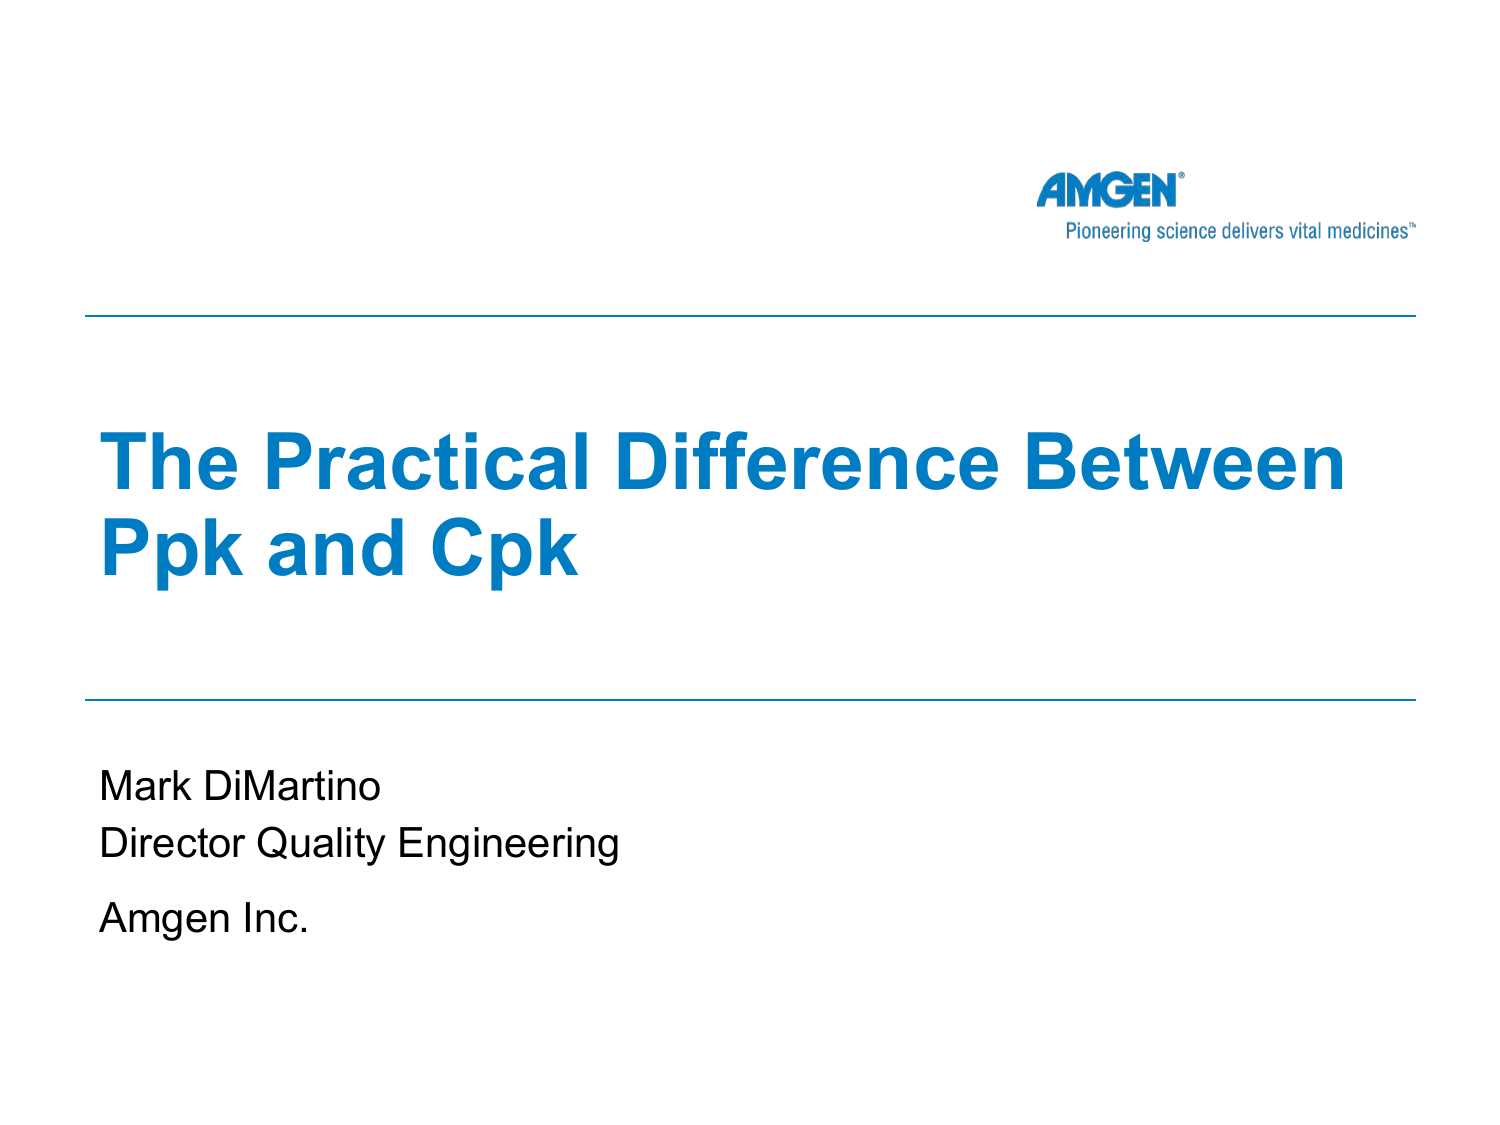 The Practical Difference Between Ppk and Cpk